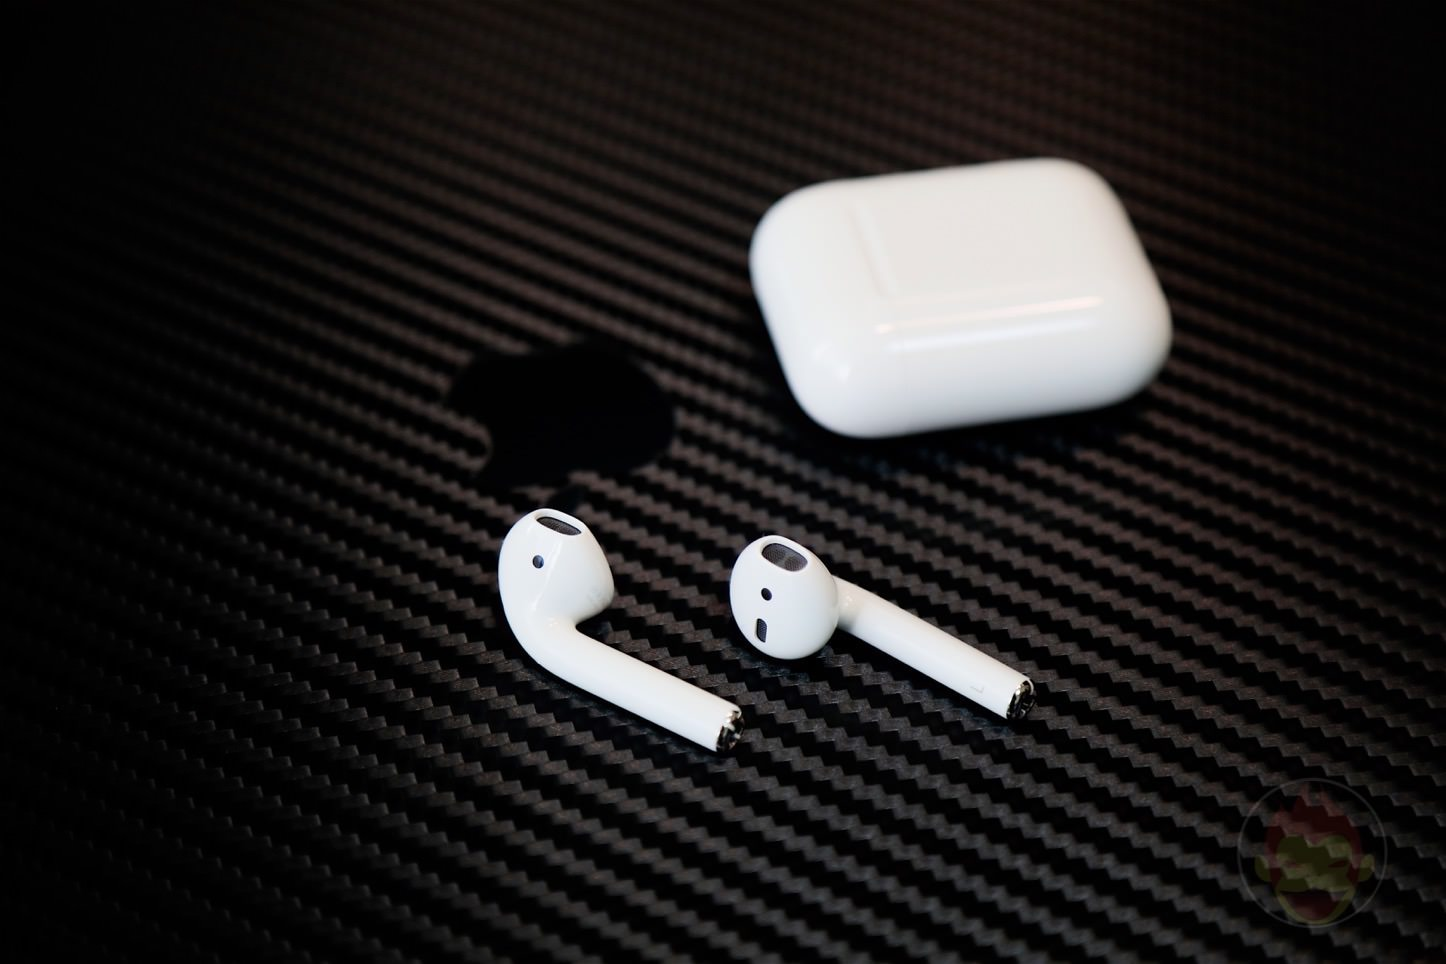 Apple-AirPods-Wireless-Earphones-11.jpg